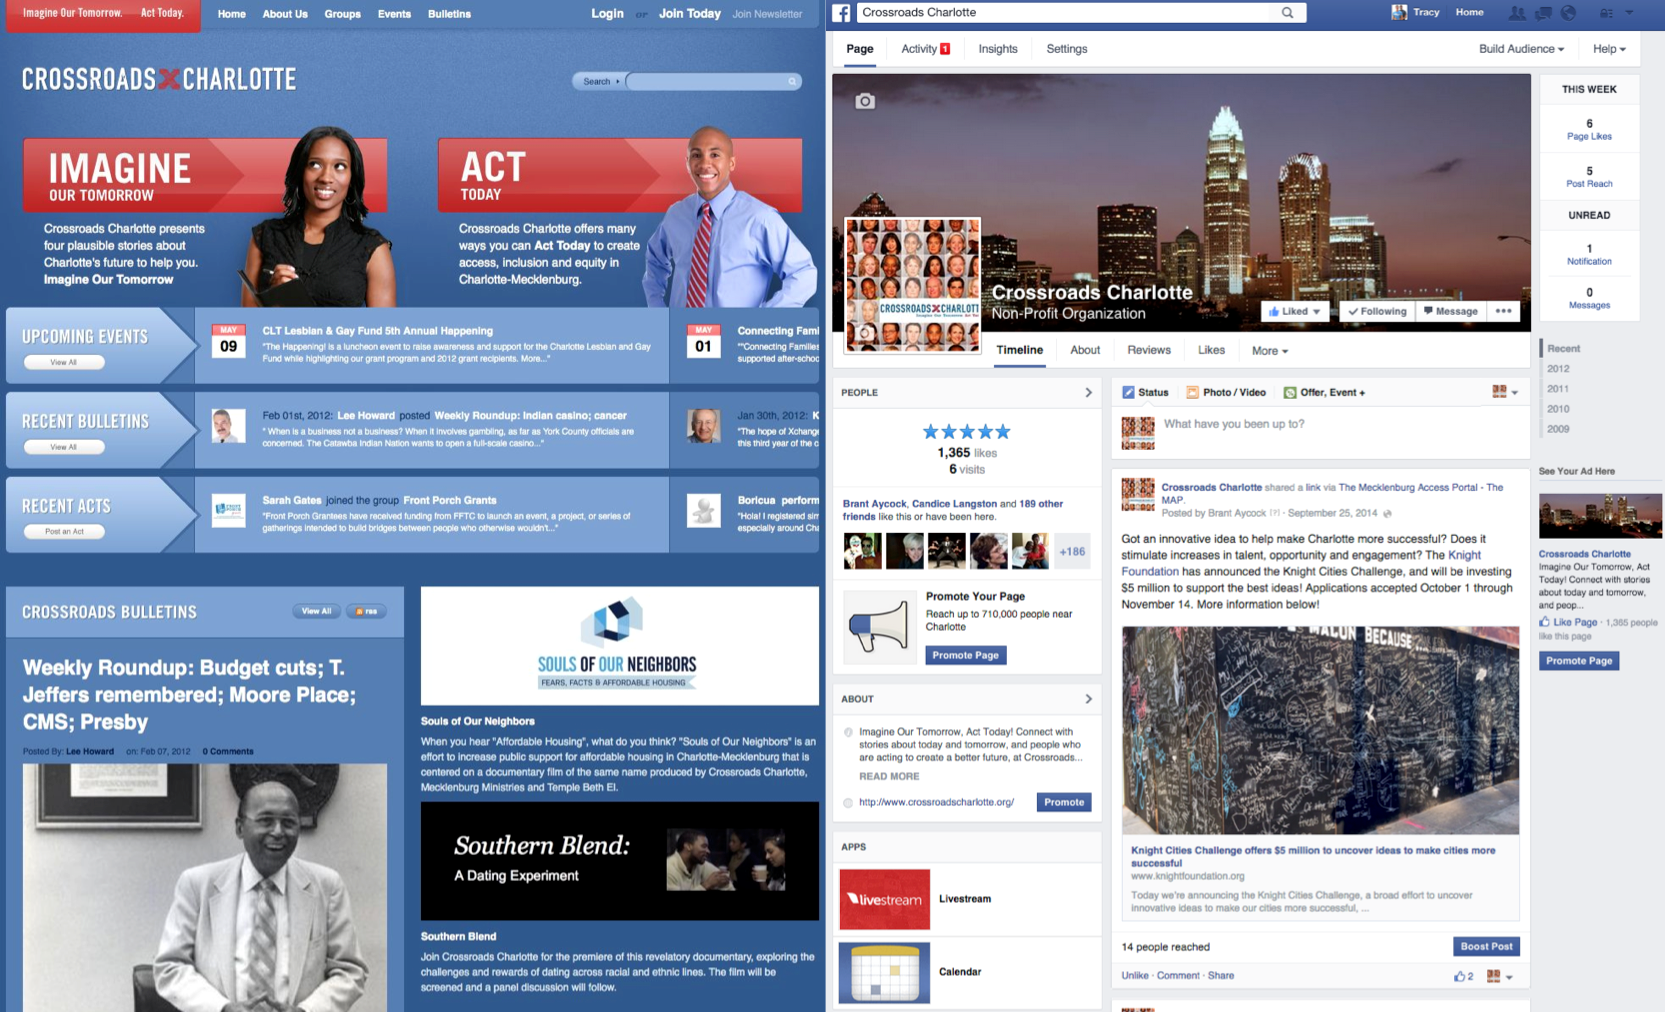 Robust web-based and social media platforms  augmented the reach of Crossroads Charlotte and served as key civic infrastructure for the community to connect on major issues.